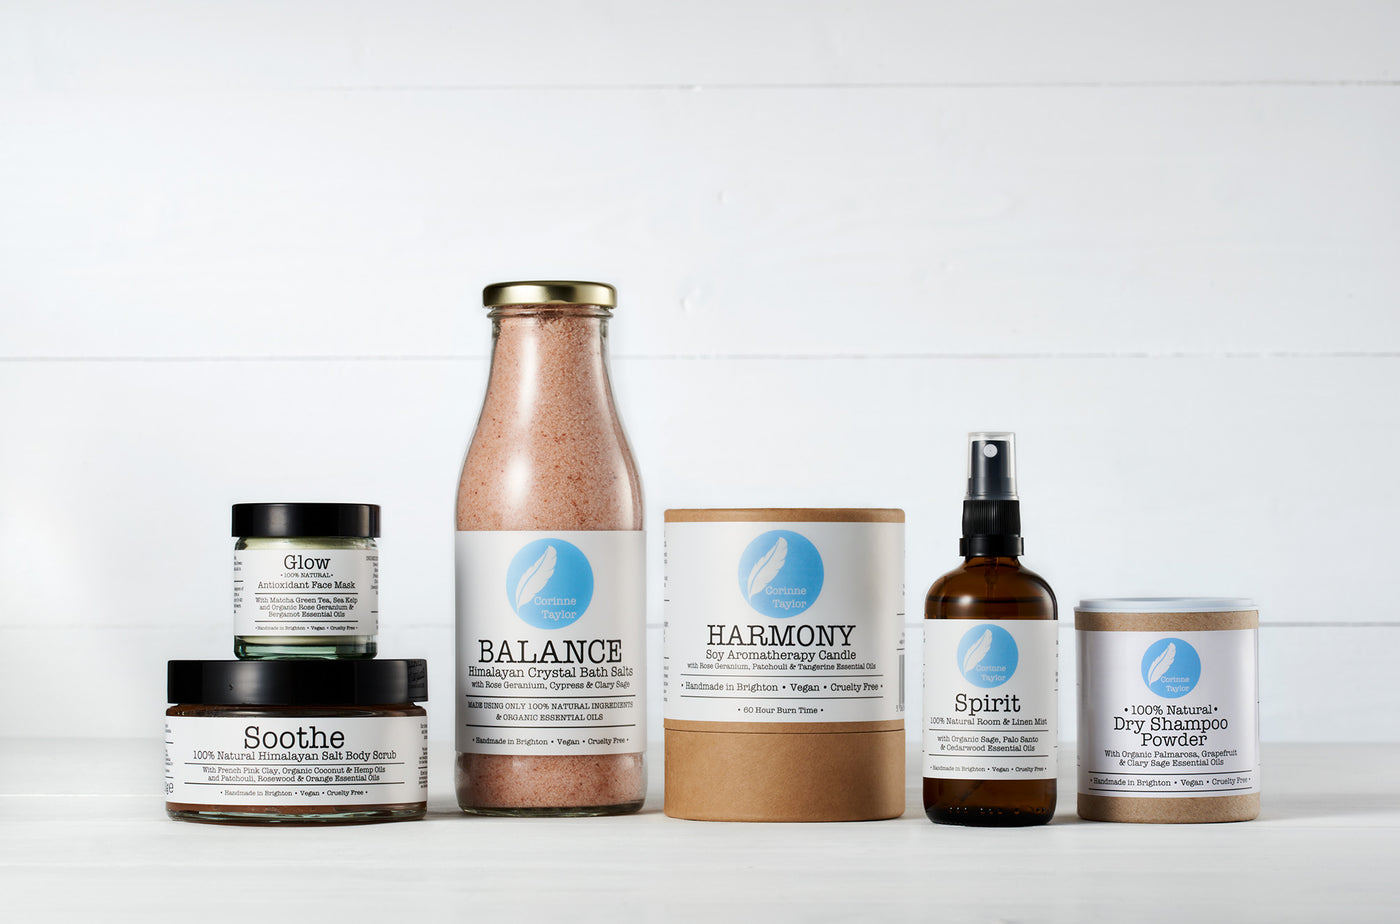 100% natural, vegan and cruelty free aromatherapy products by Corinne Taylor. Our range includes Himalayan bath salts and body scrubs, soy candles, room and linen mists, plant based skincare, hair care and luxury eco friendly gift boxes.